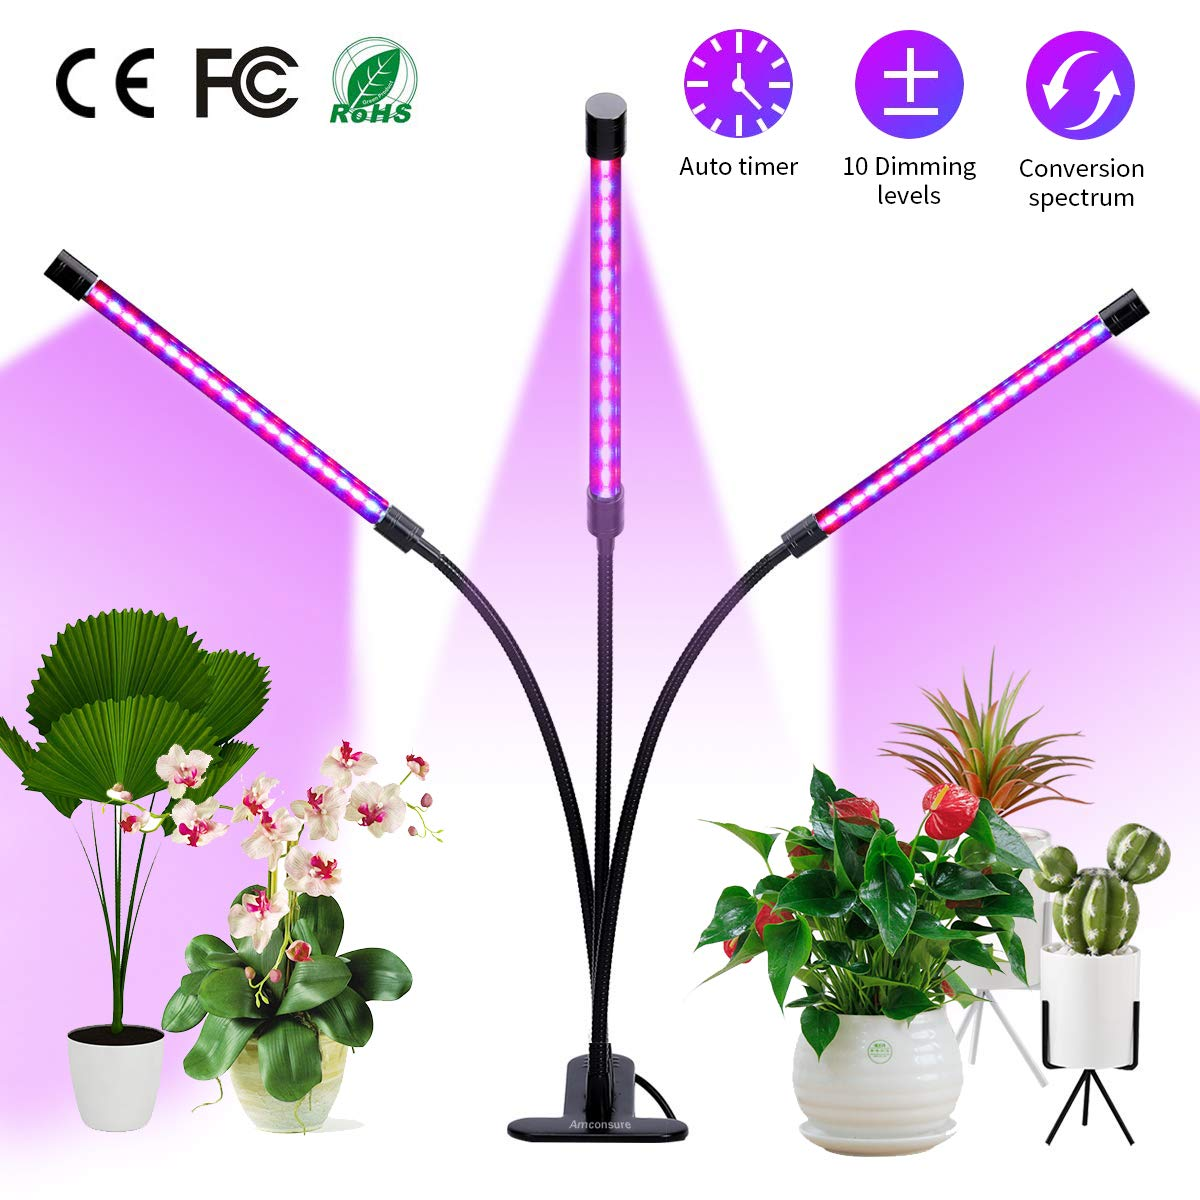 Plant Grow Light with Auto Turn On Function, 57 LED Growing Lamp with 3/9/12 Timer, High Power LED, 10 Dimmable Levels, 360°Control Adjustable Gooseneck for Hydroponics Greenhouse Gardening